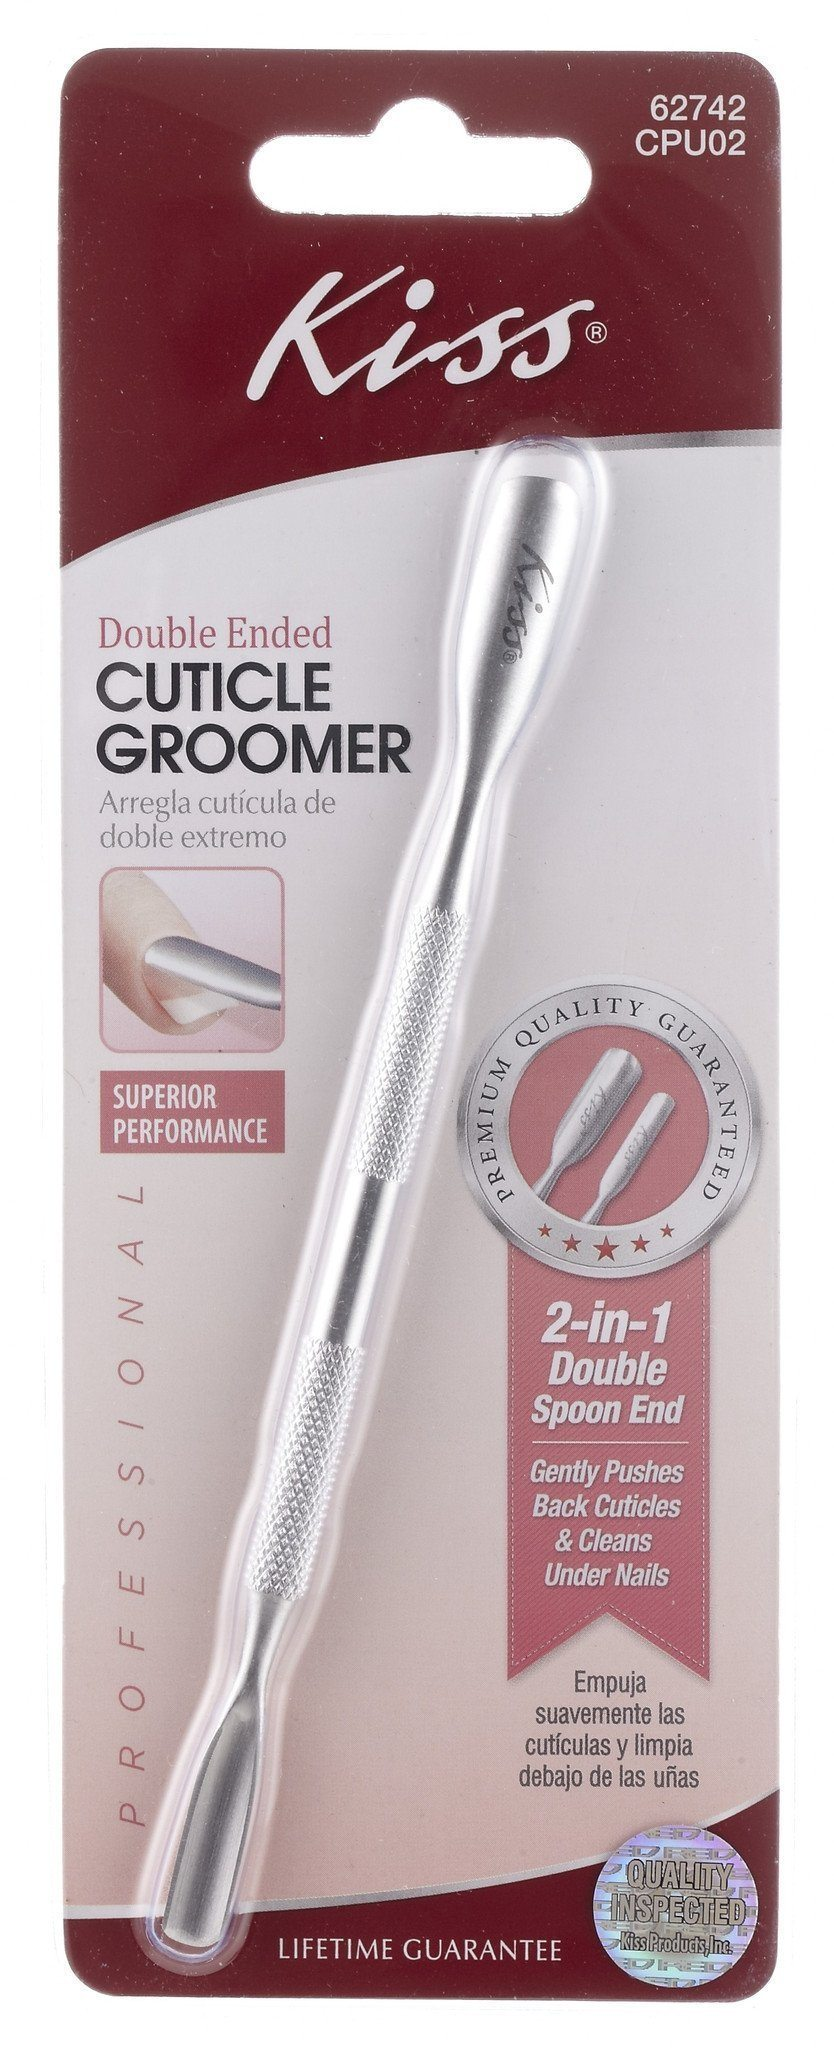 #Cpu02 Kiss Cuticle Groomer (Pc)